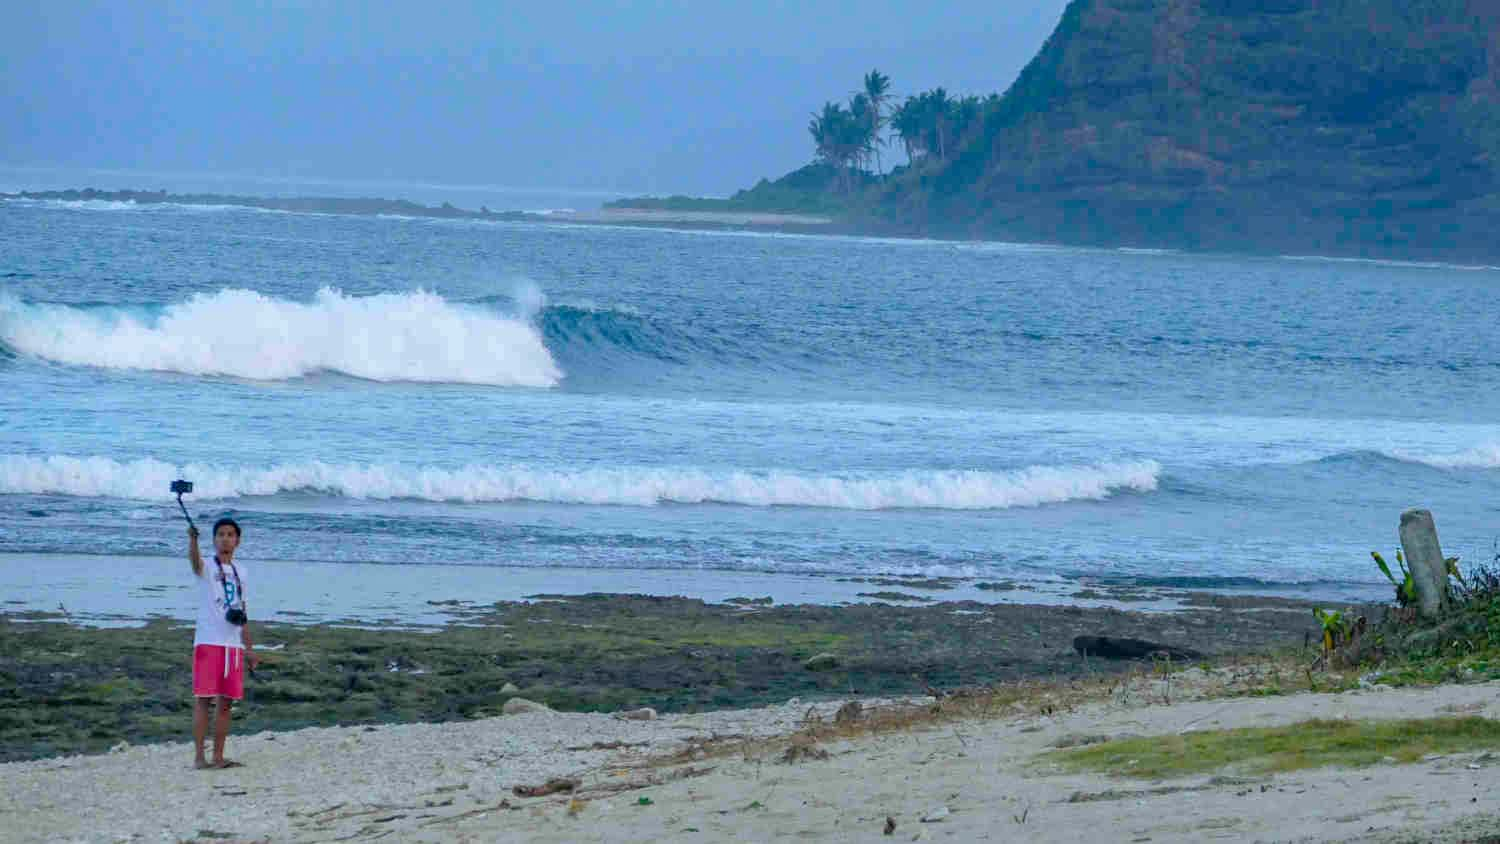 Great uncrowded surf for other options when the wind is light